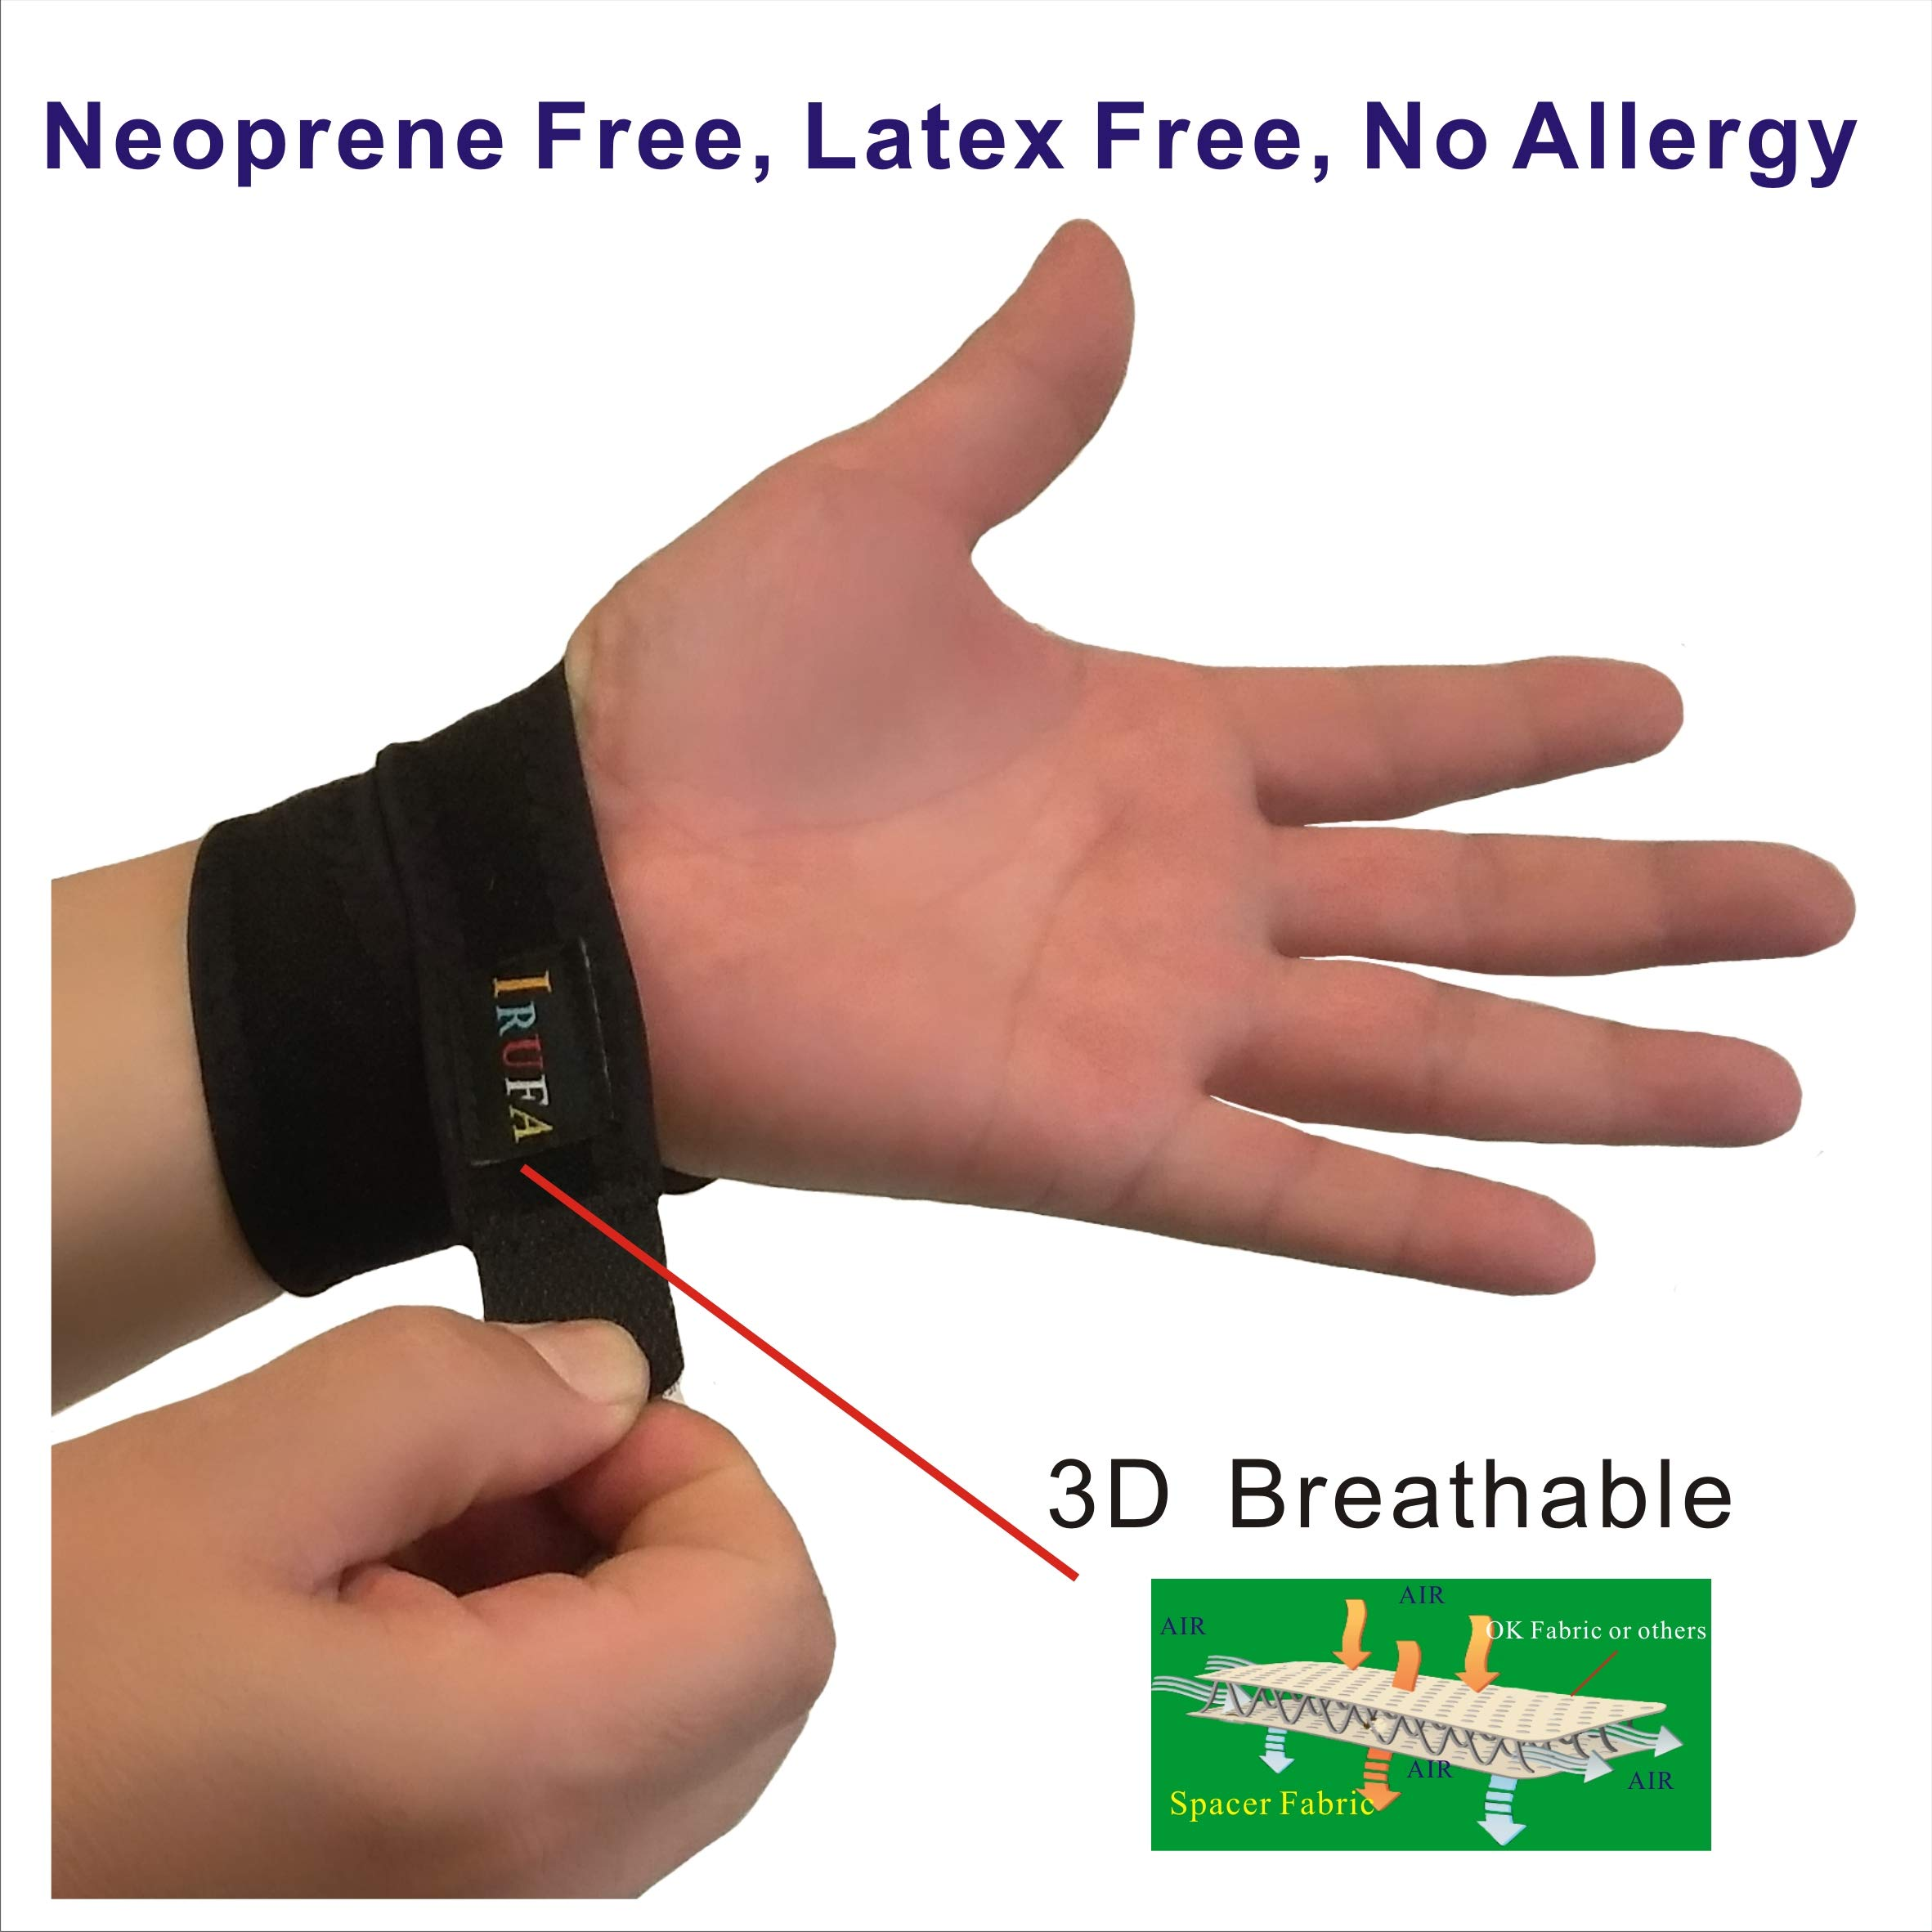 IRUFA,WR-OS-17,3D Breathable Spacer Fabric Wrist Brace, for TFCC Tear- Triangular Fibrocartilage Complex Injuries, Ulnar Sided Wrist Pain, Weight Bearing Strain, One PCS (Spacer Fabric) by IRUFA (Image #4)